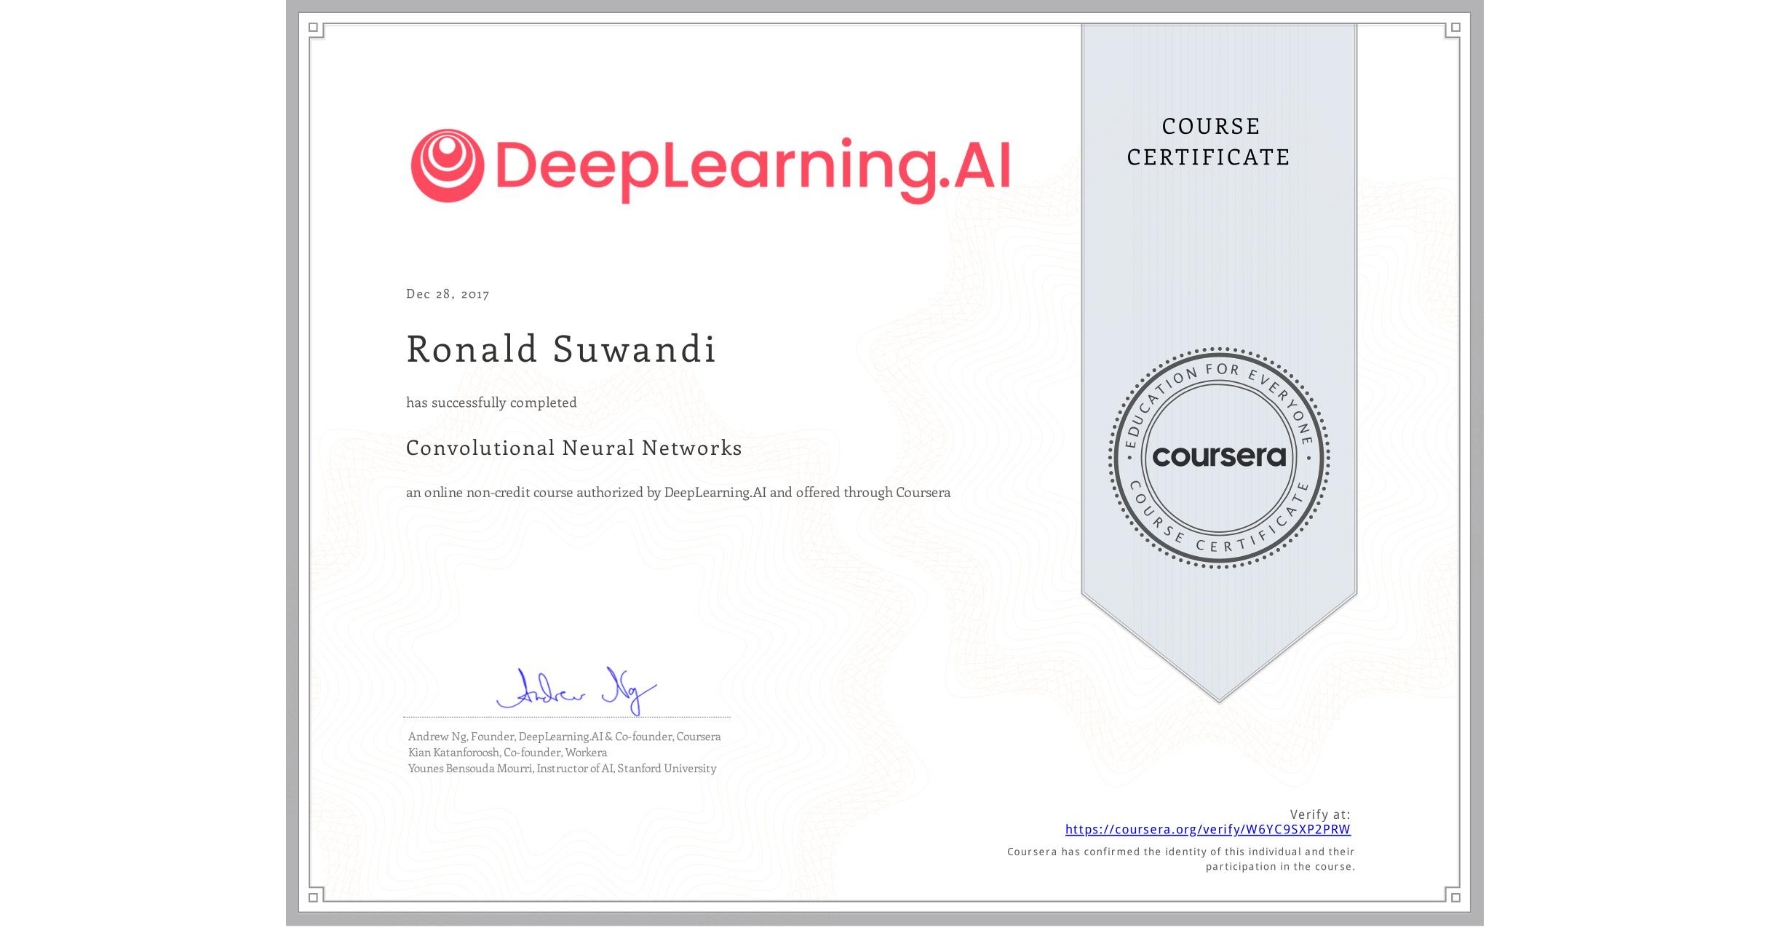 View certificate for Ronald Suwandi, Convolutional Neural Networks, an online non-credit course authorized by DeepLearning.AI and offered through Coursera